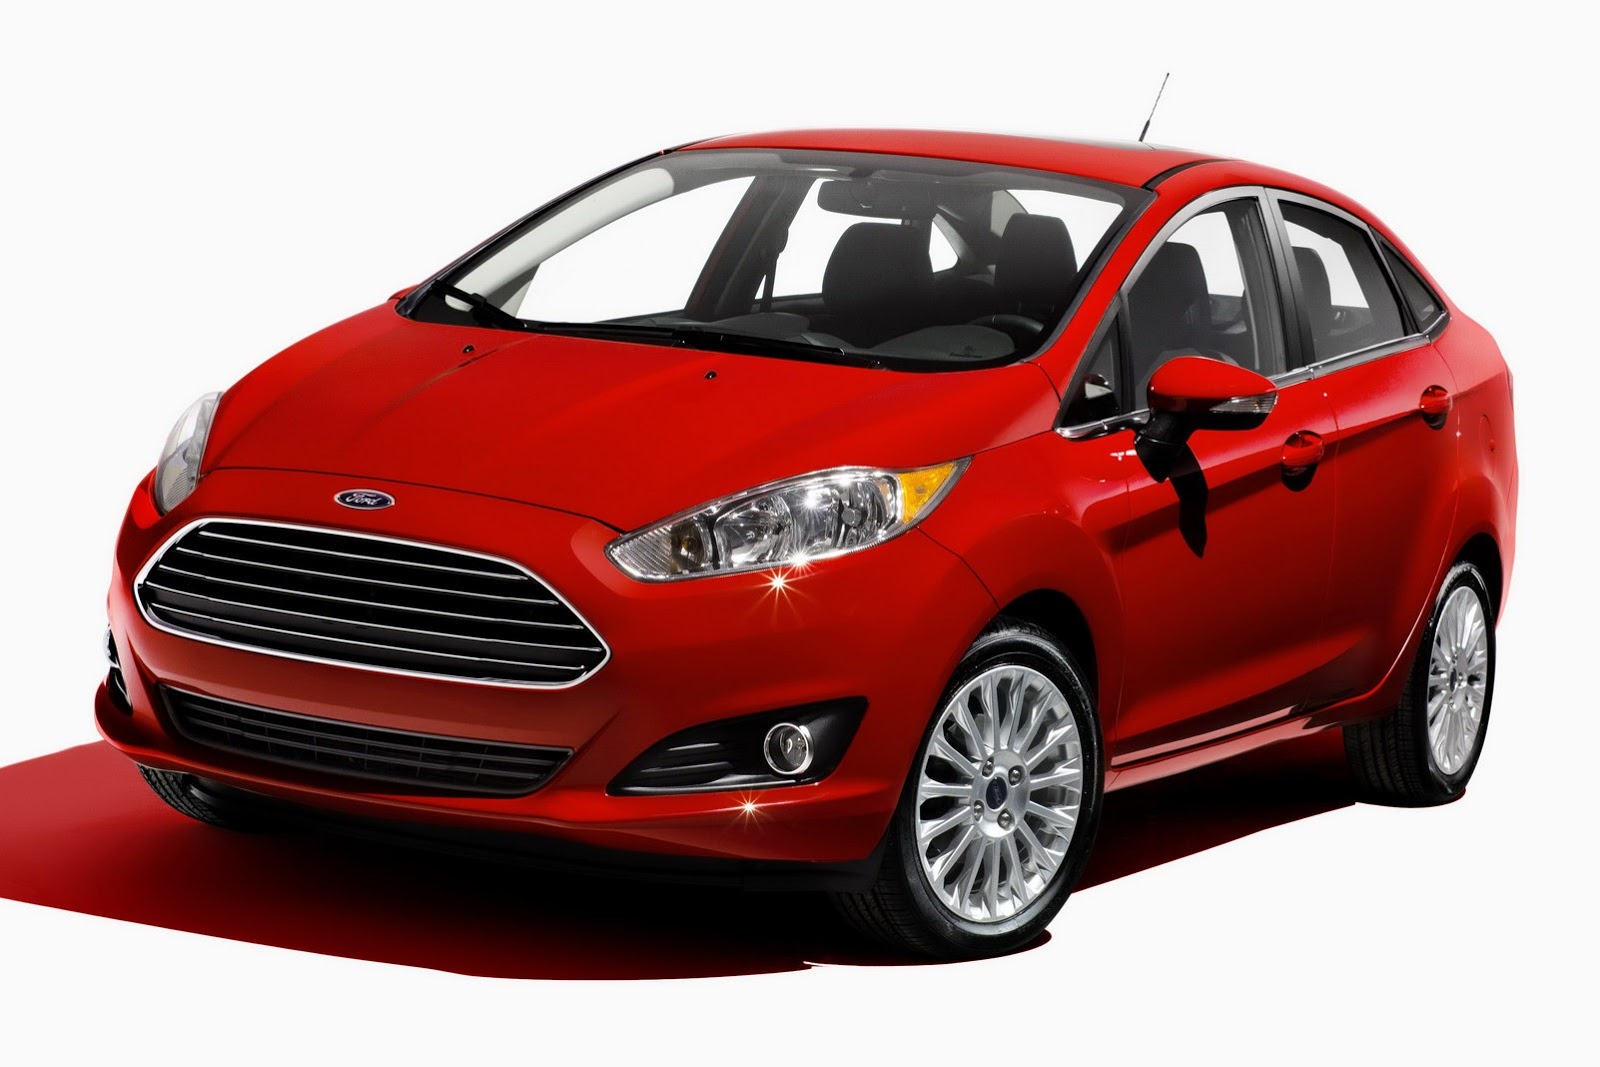 Ford Fiesta facelift coming in 2014 - Autocar India